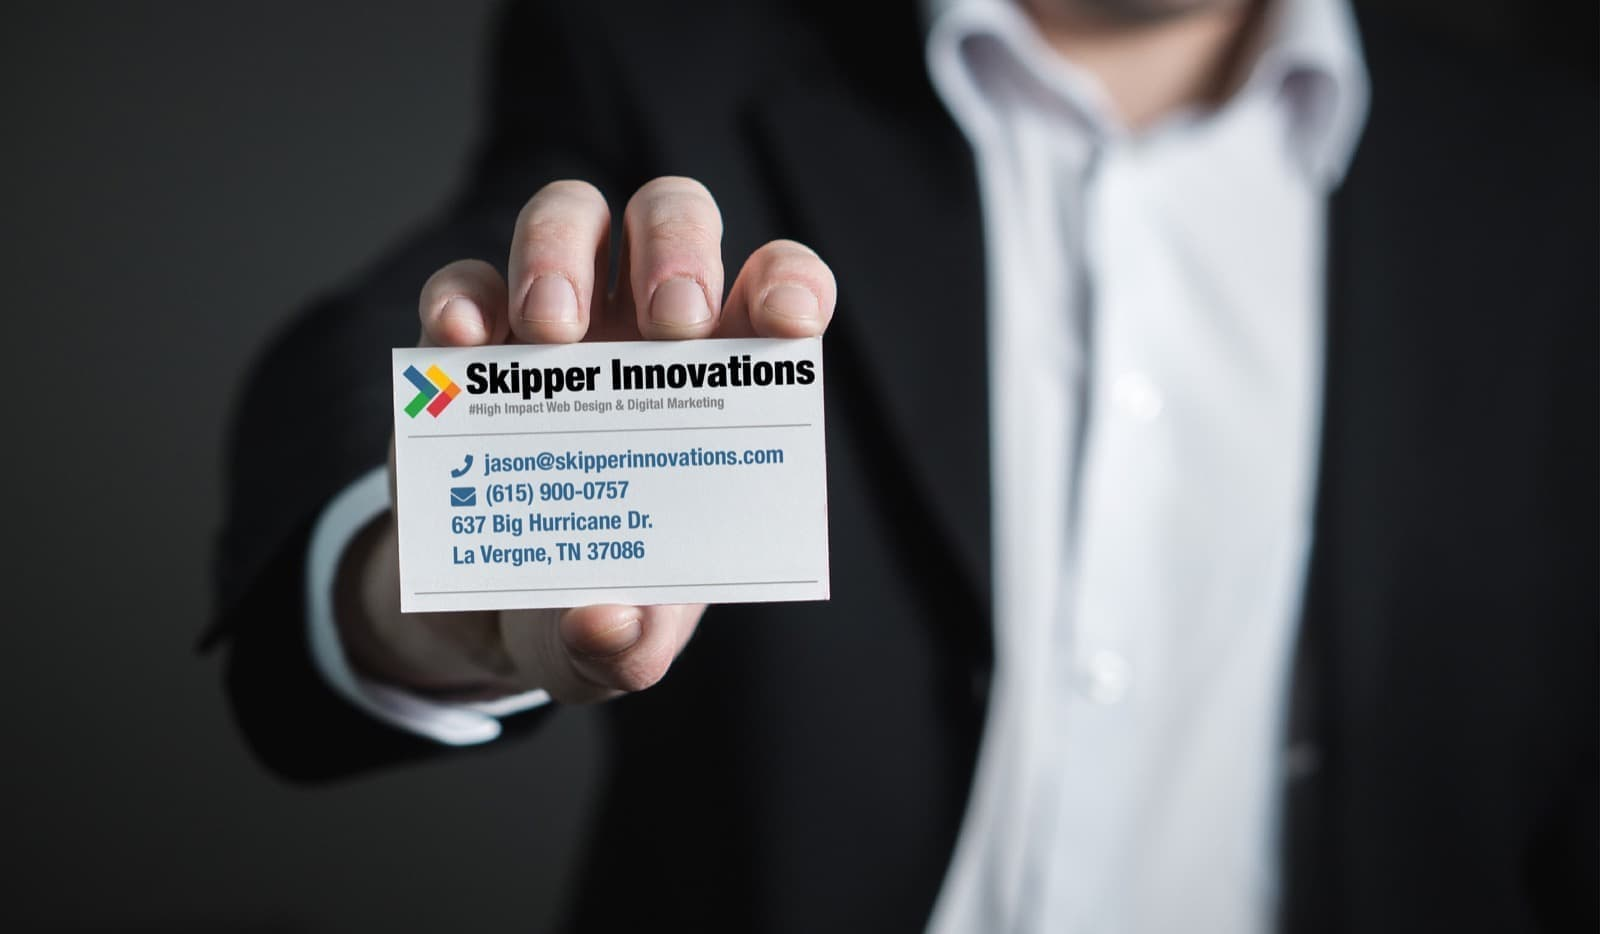 Skipper Innovations Web Development